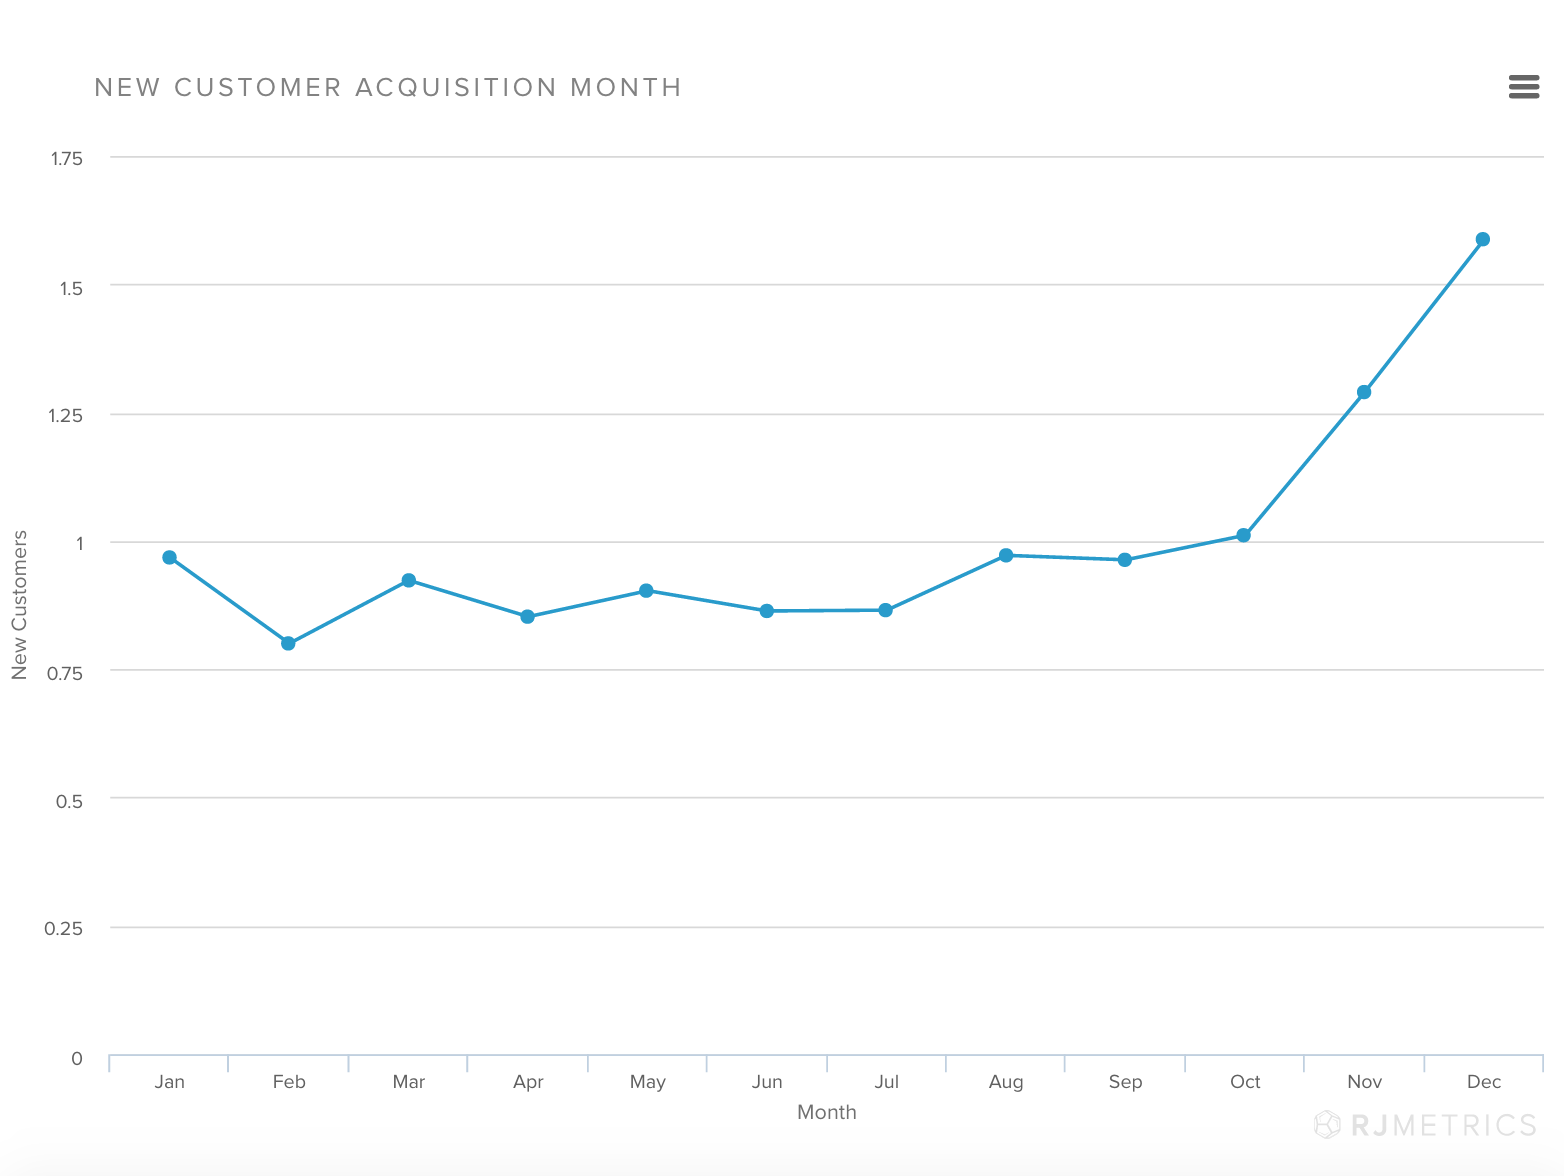 There's a noticeable uptick in new customers during the end of the year. (Image source: RJMetrics)